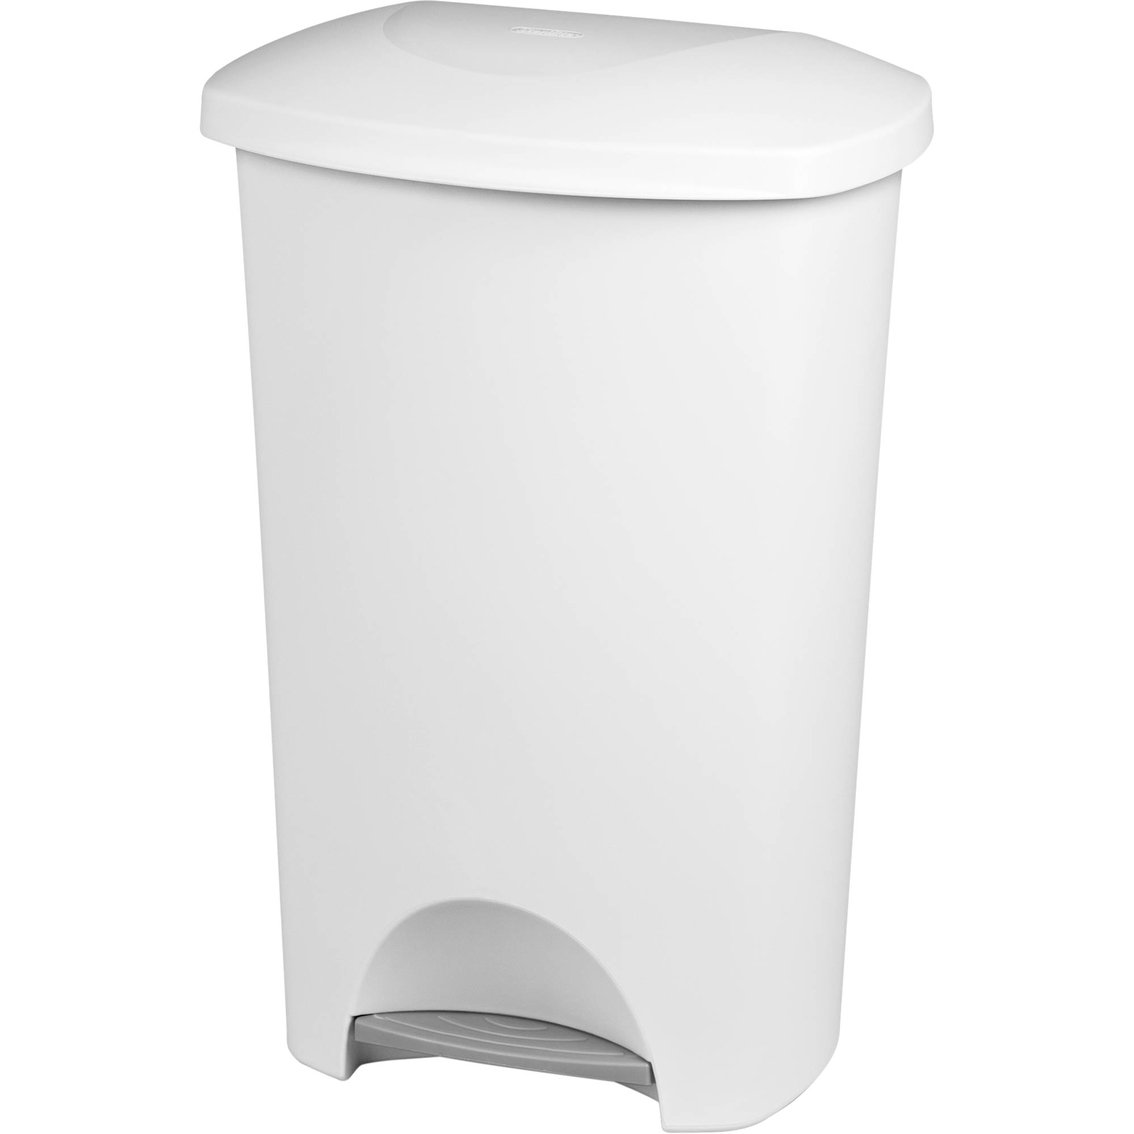 Laundry Trash Cans Sterilite 11 Gal Stepon Wastebasket Trash Cans Home